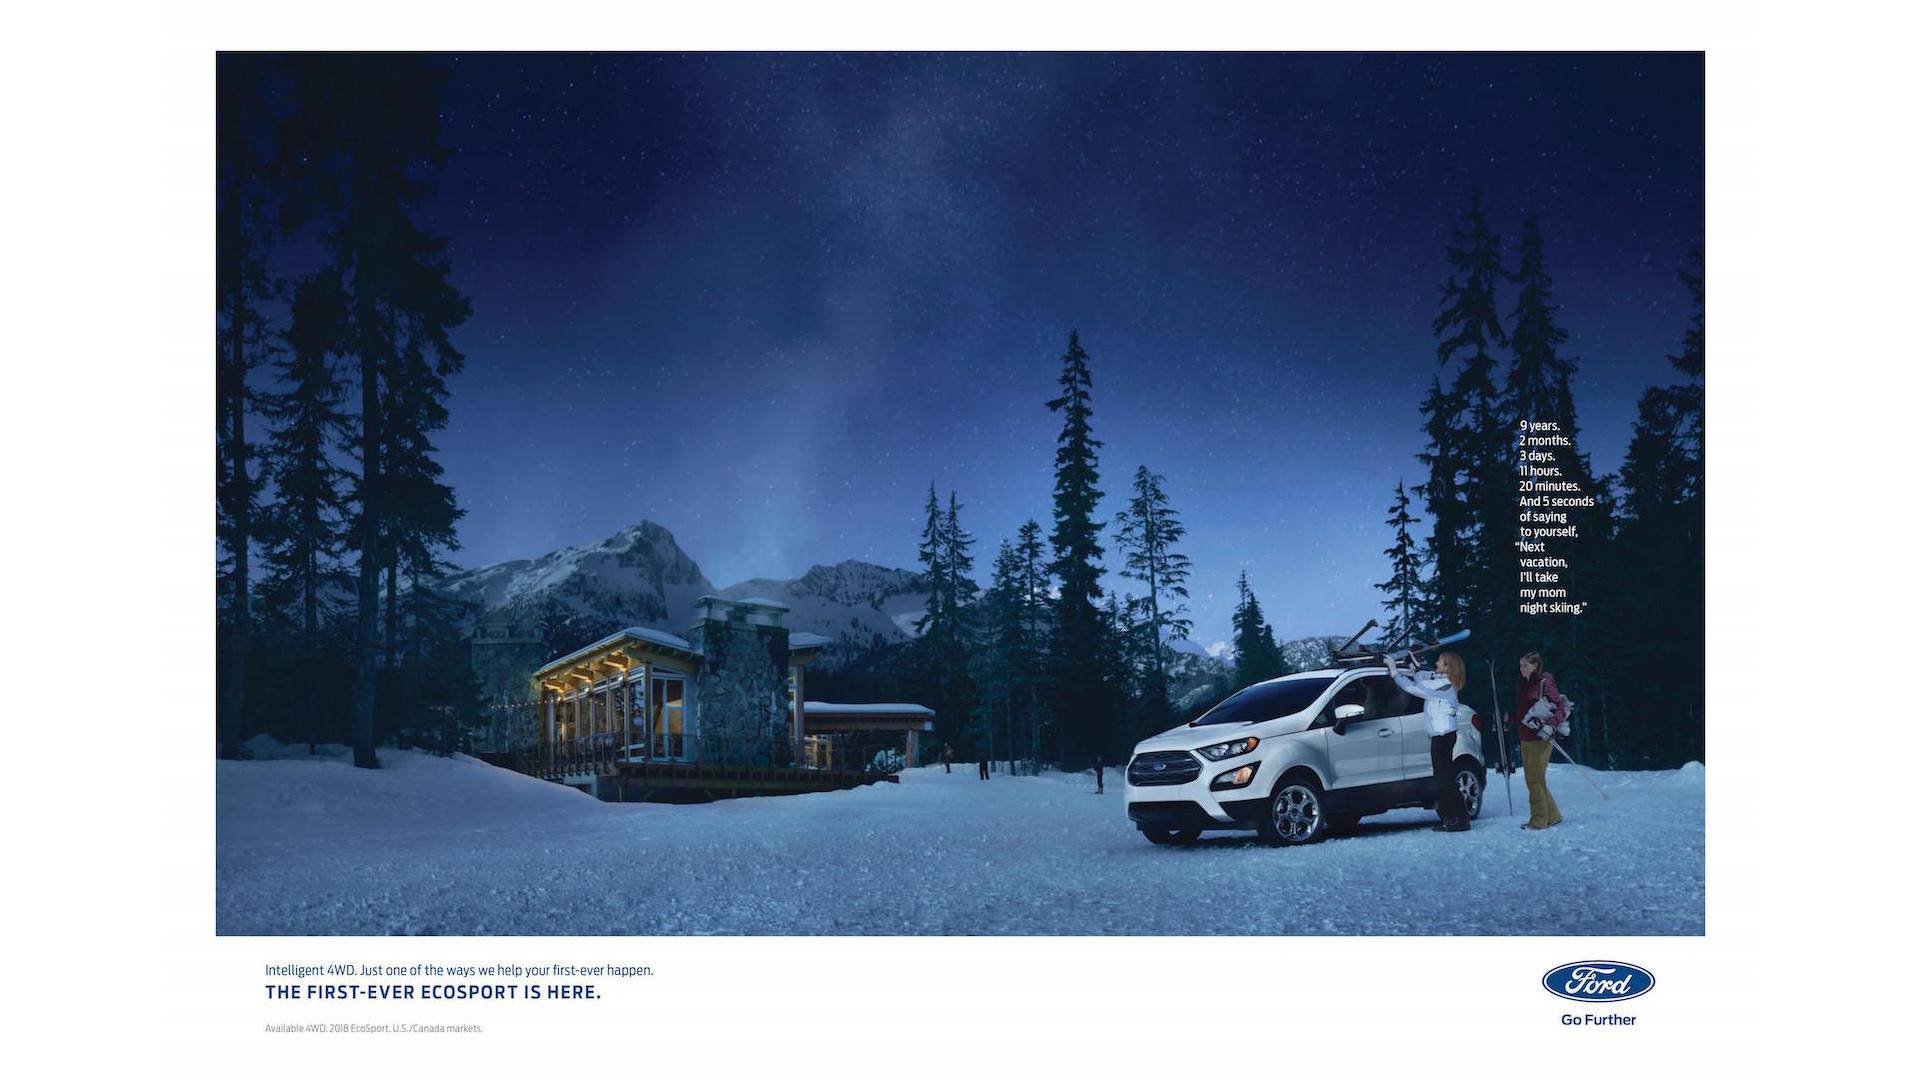 Ford Ecosport Expedition Star In Olympic Themed Ads